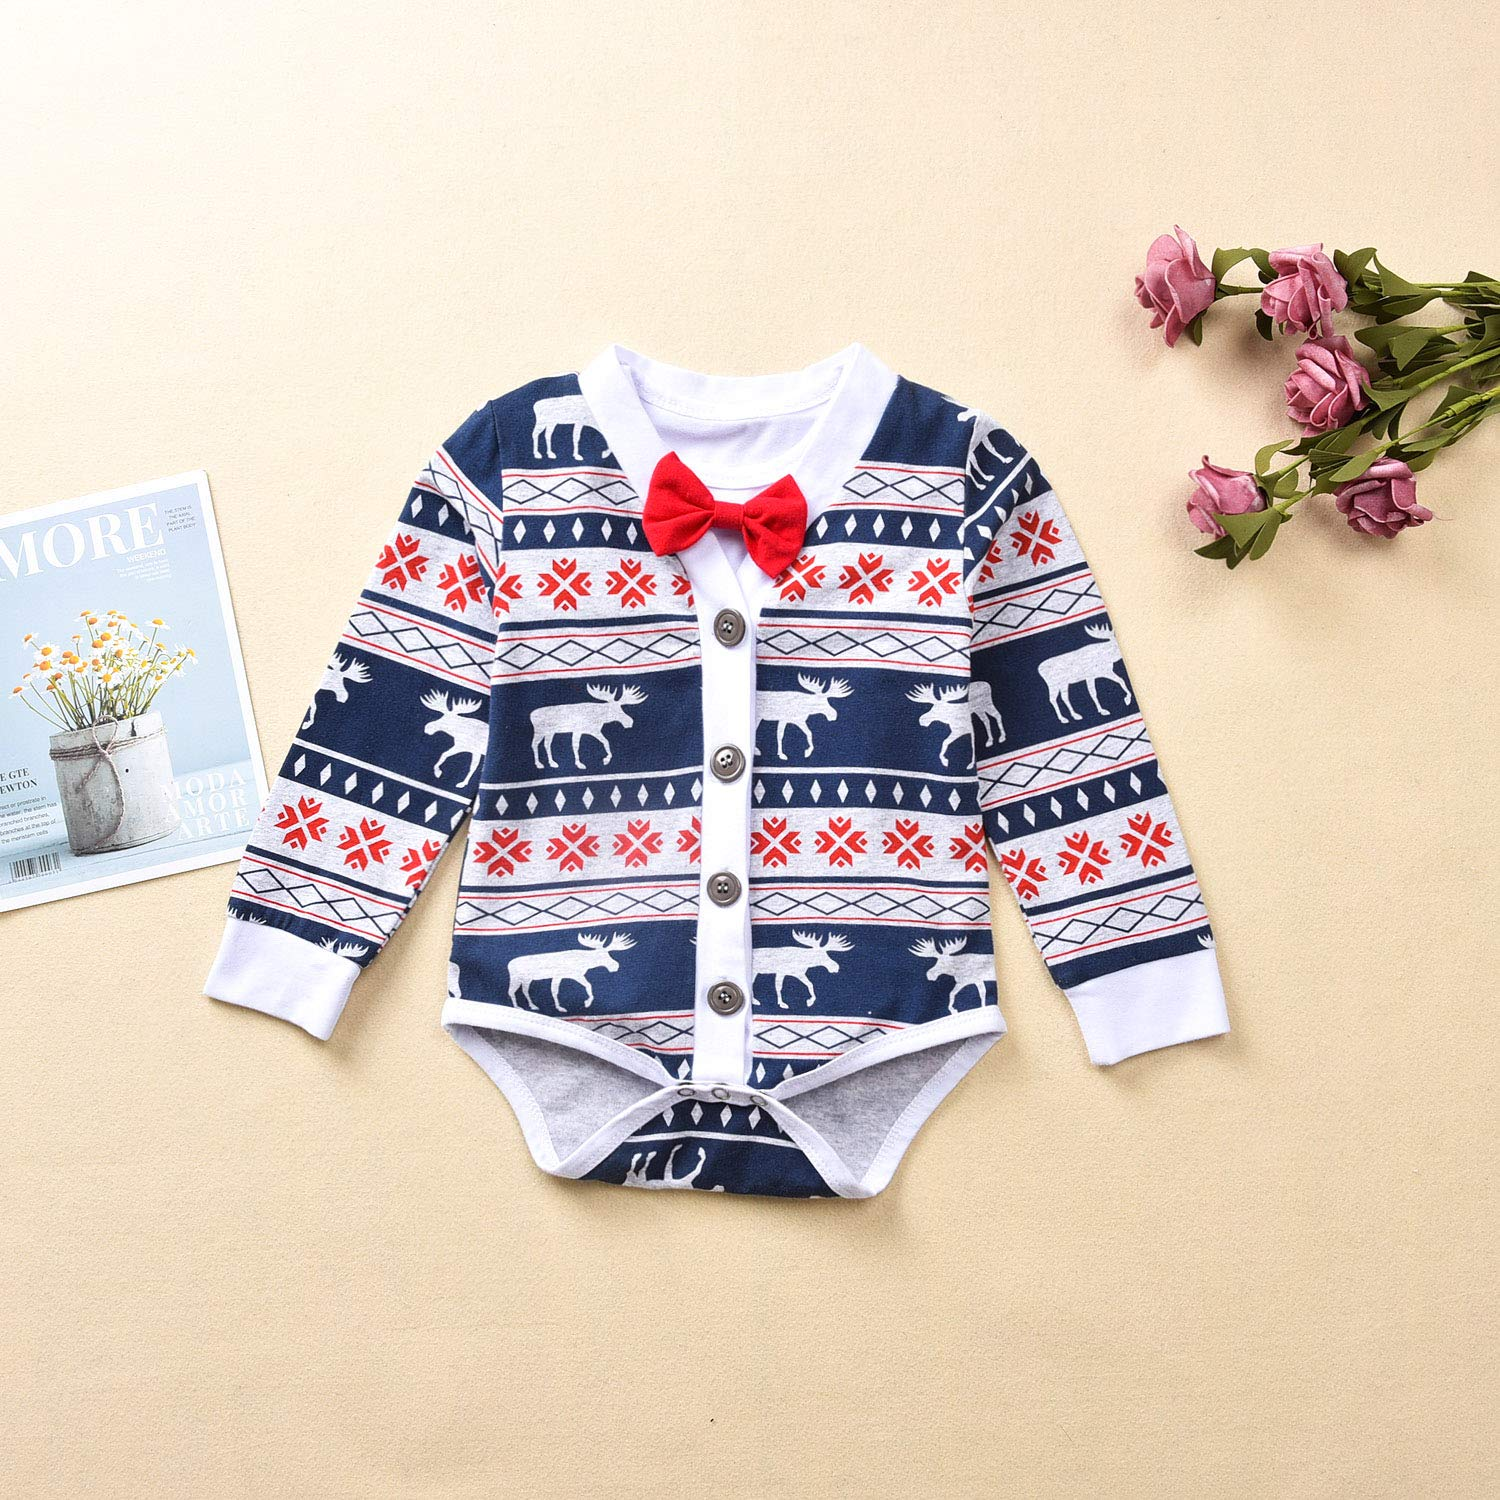 Fioukiay Preemie Newborn Baby Boys Christmas-Bodysuit-Romper-Clothes-Outfits-Set